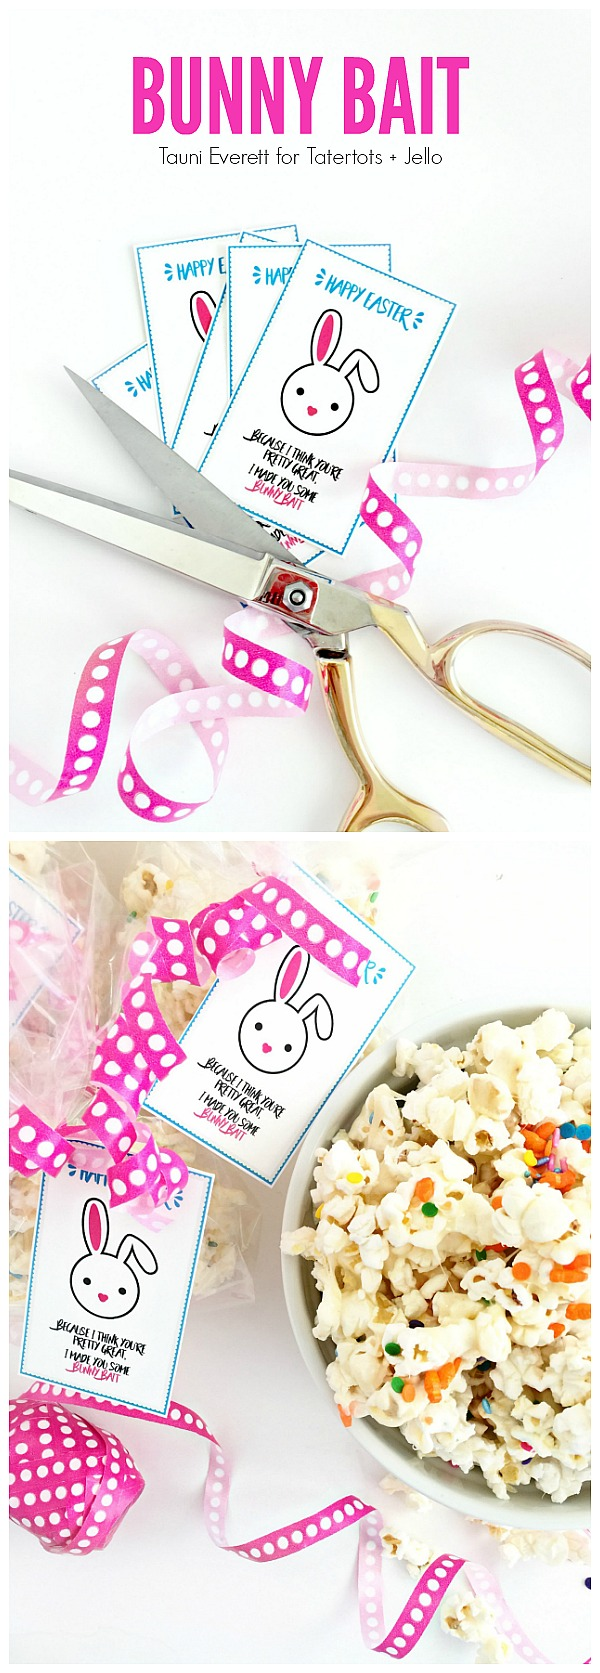 Bunny Bait Gift Idea and Printable Tags. Print off these cute tags and give someone you love a cute spring gift!